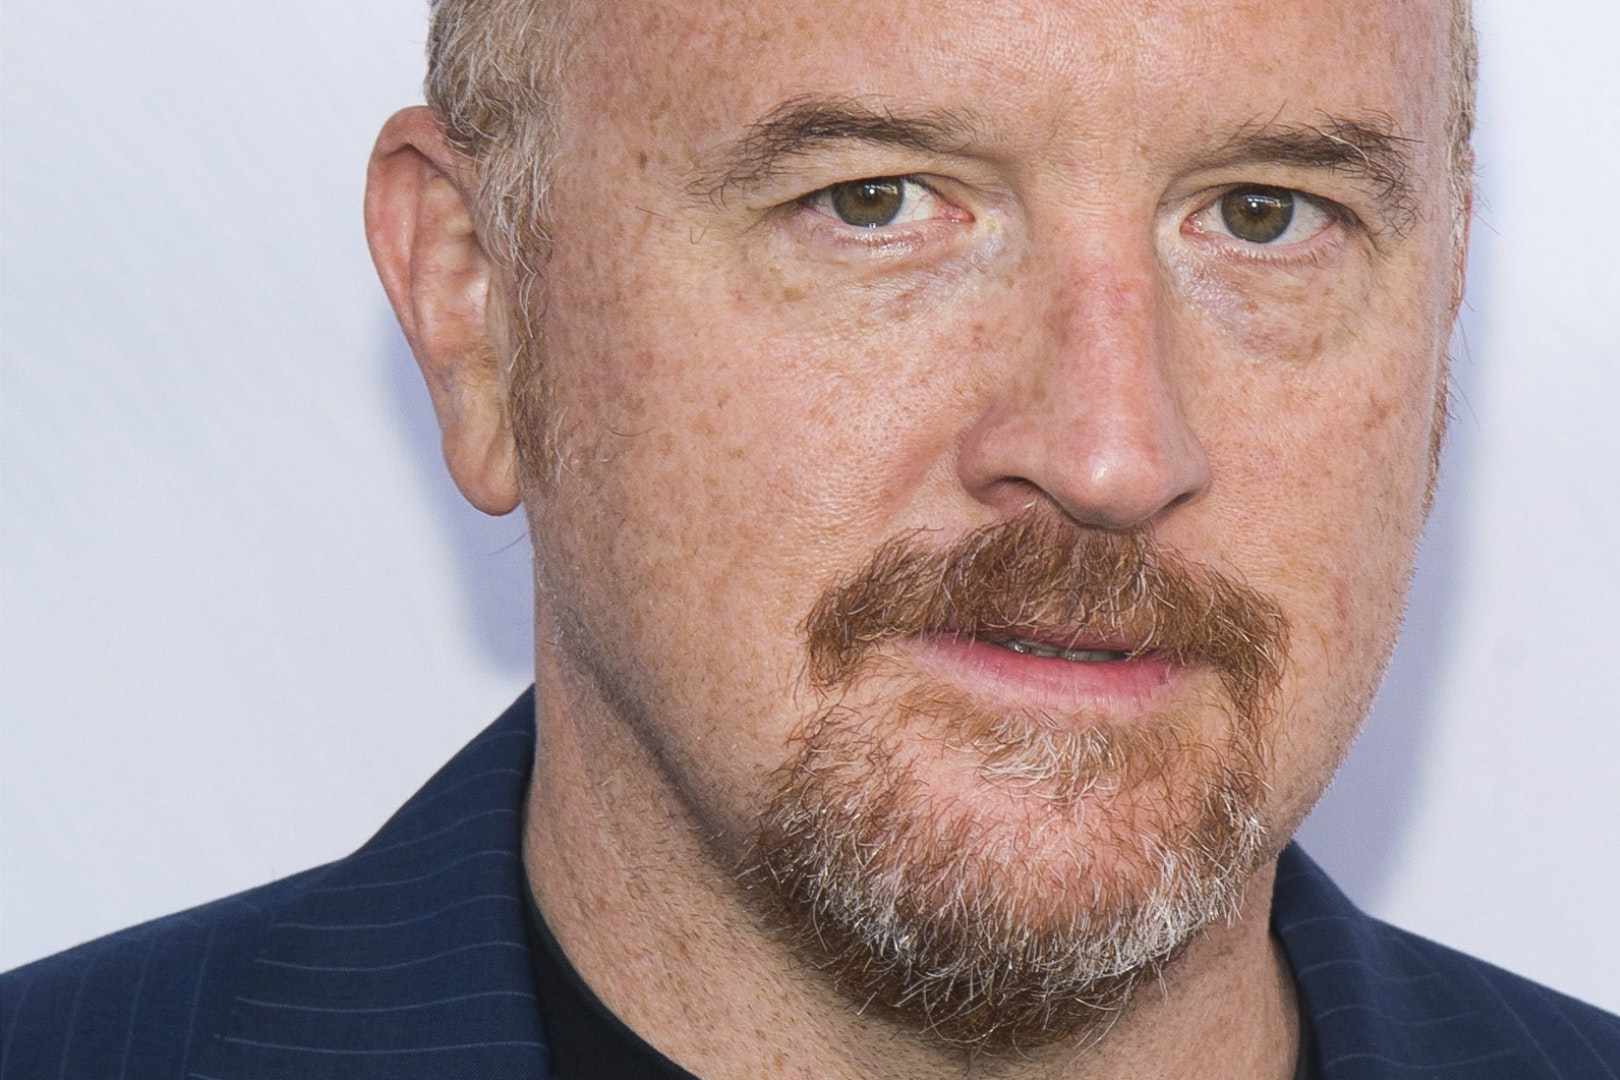 Louis CK has said the allegations made against him are true (Charles Sykes/Invision/AP)